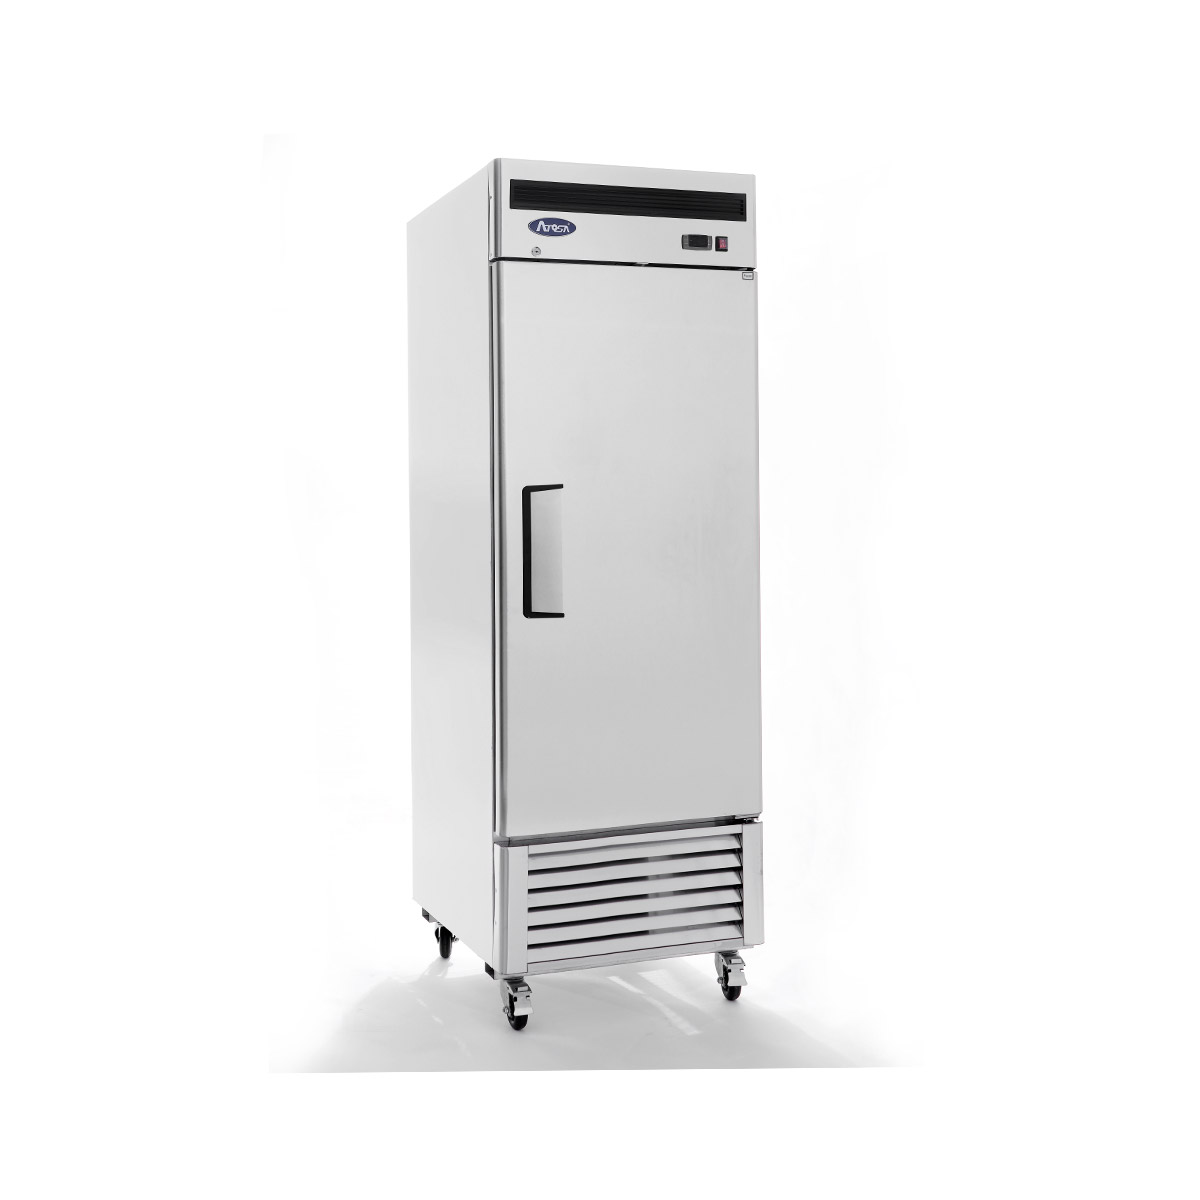 Atosa MBF8185GR Single Door Upright Refrigerator